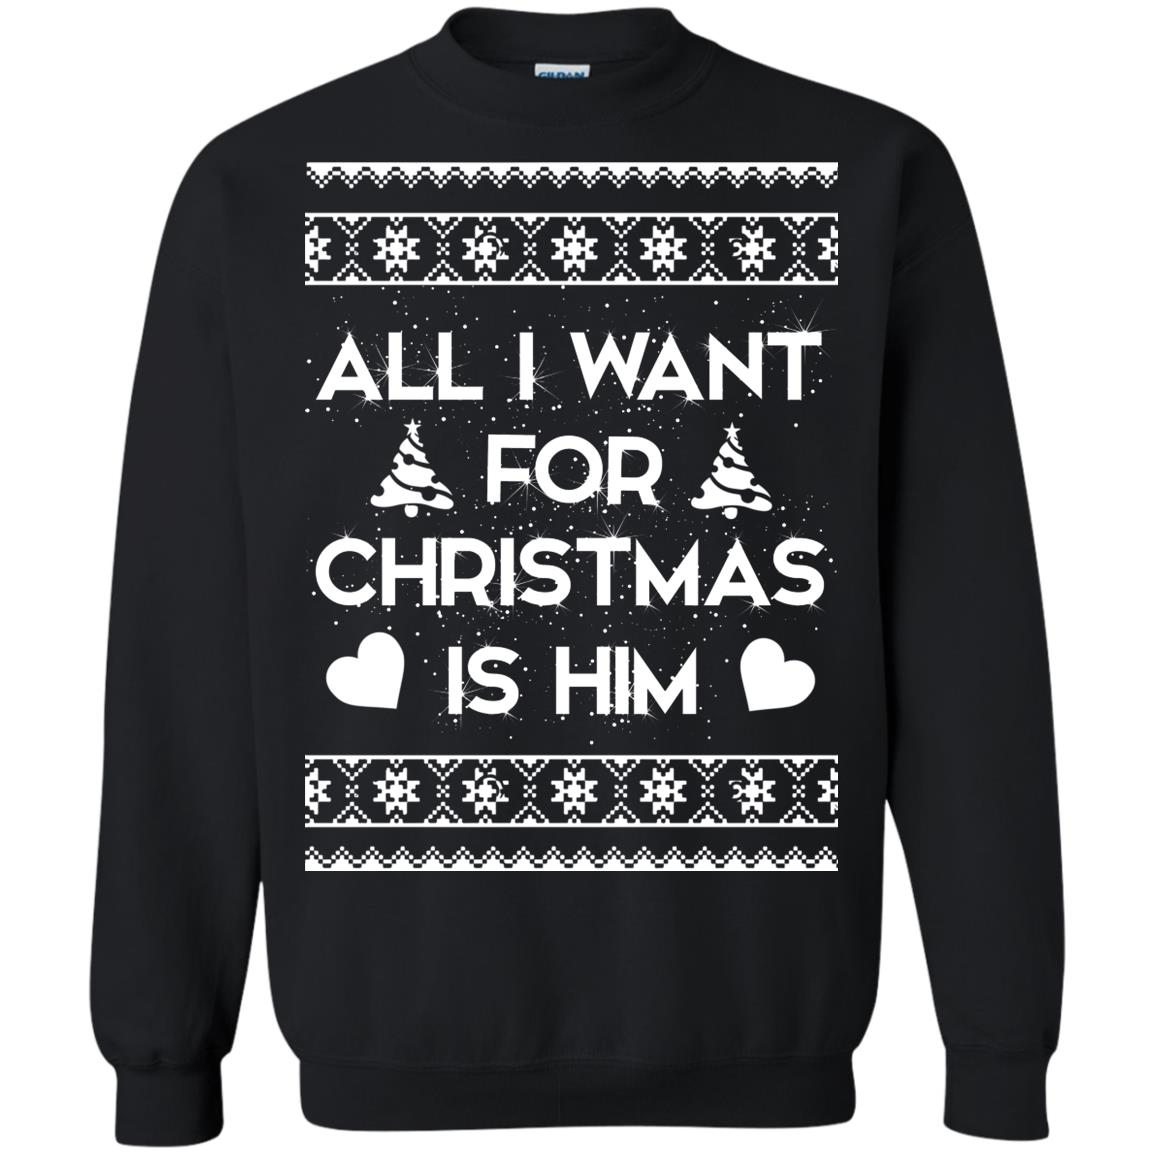 image 2377 - Couple Sweatshirt: All I Want For Christmas Is Him Ugly Sweater, Shirt